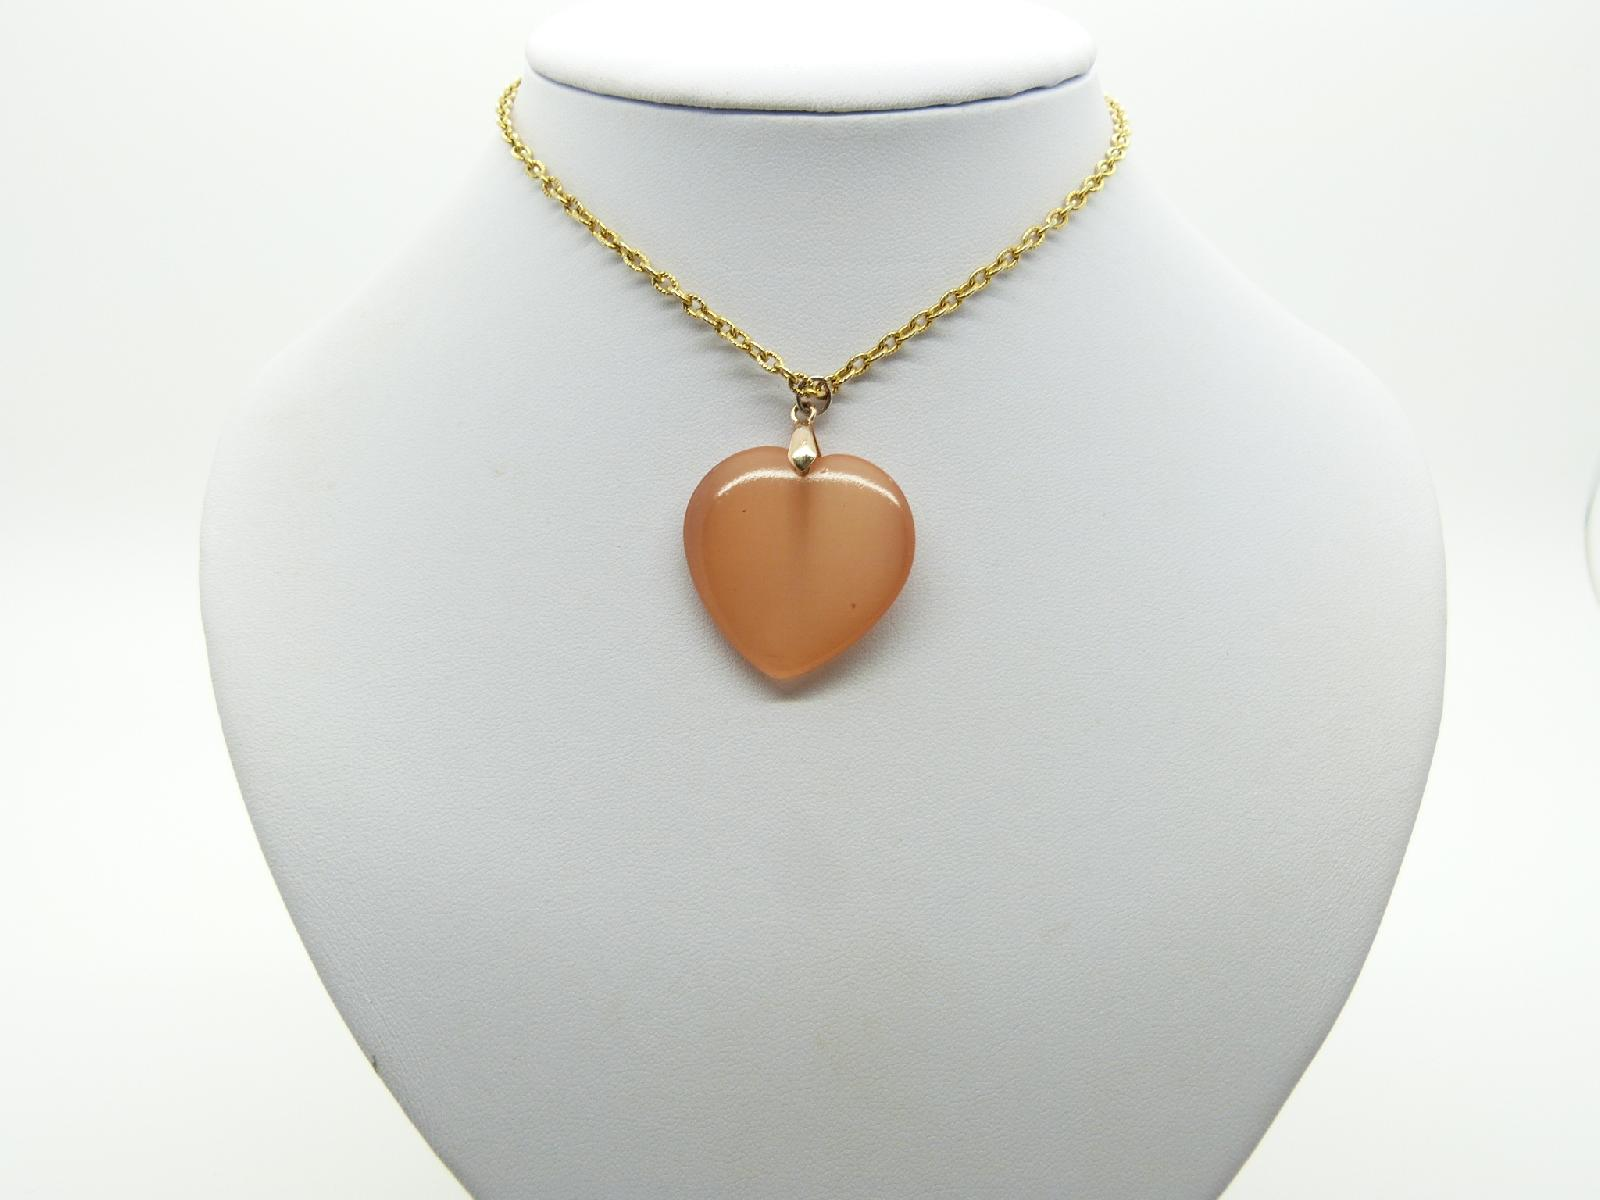 Vintage 80s Peach Coloured Moonglow Glass Heart Pendant with Gold Chain